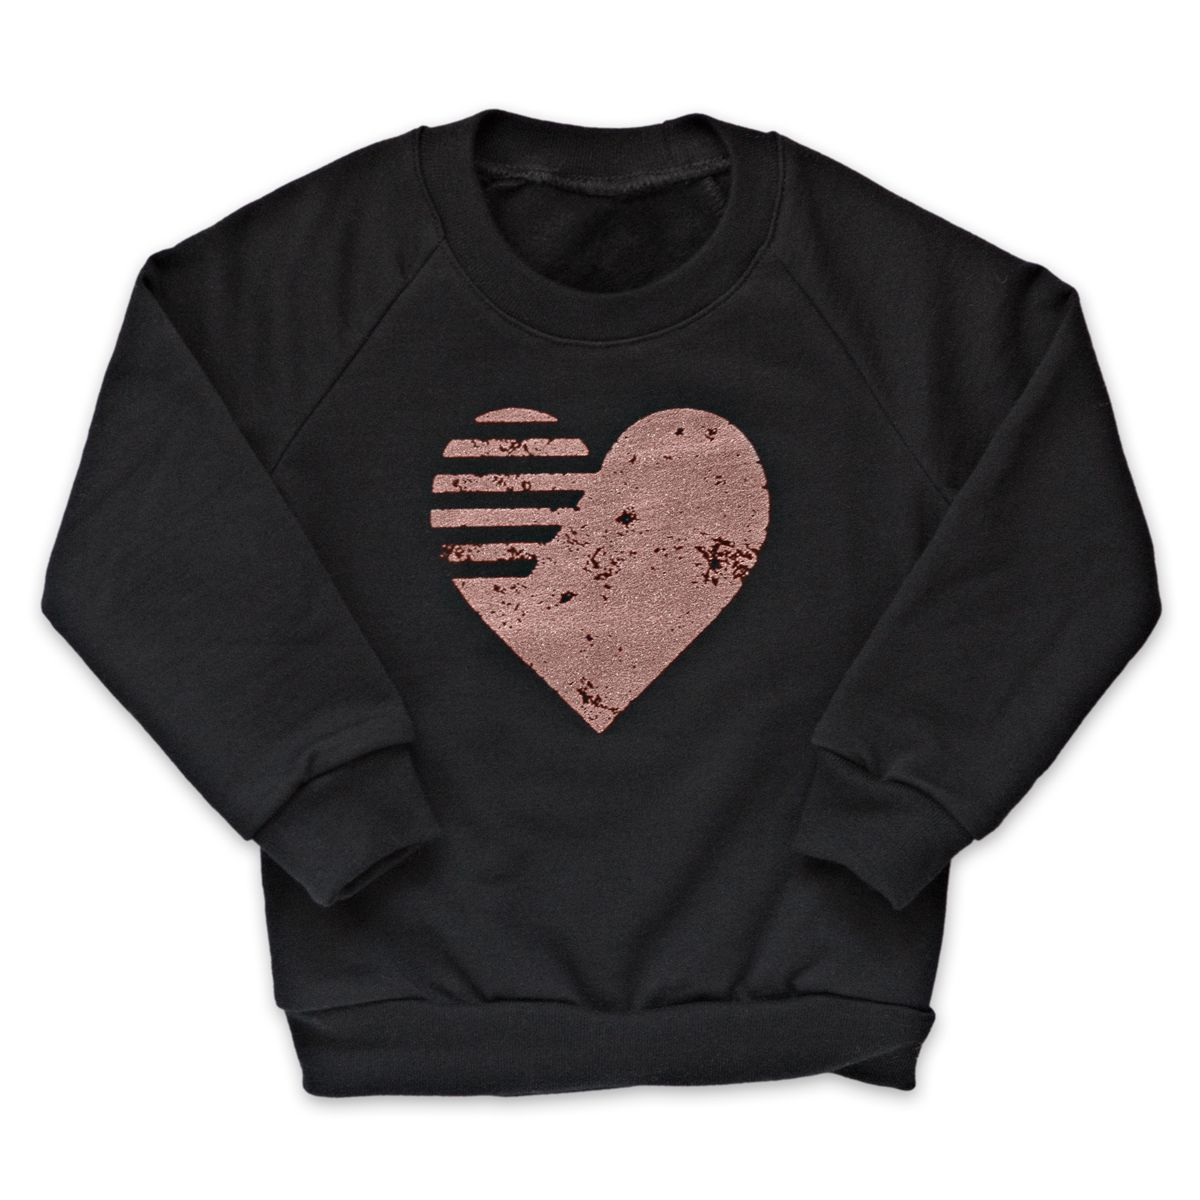 Rose Gold graphic heart sweatshirt -- AVAILABLE AUGUST 20TH